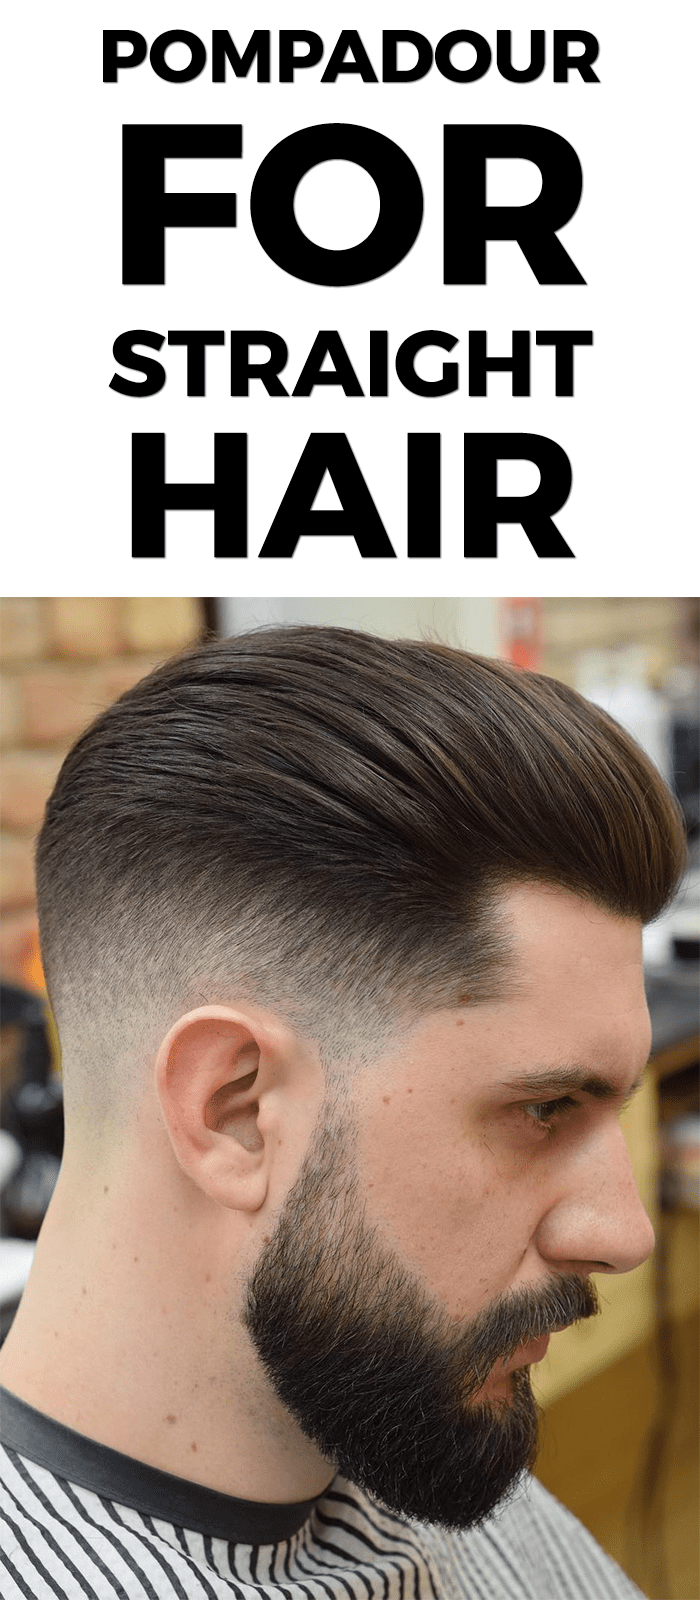 Pompadour for Straight Hair